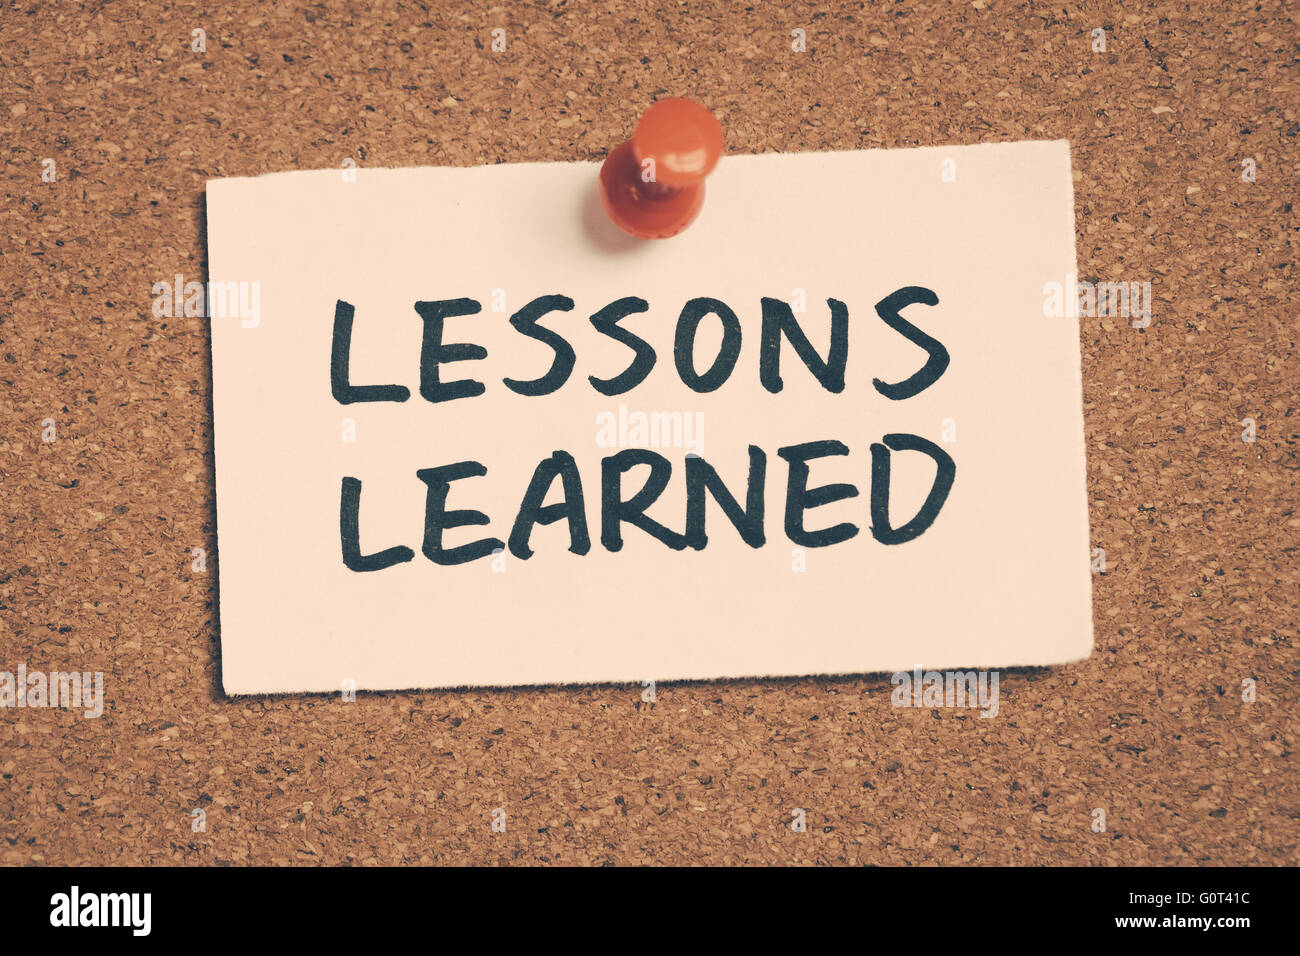 lessons learned - Stock Image